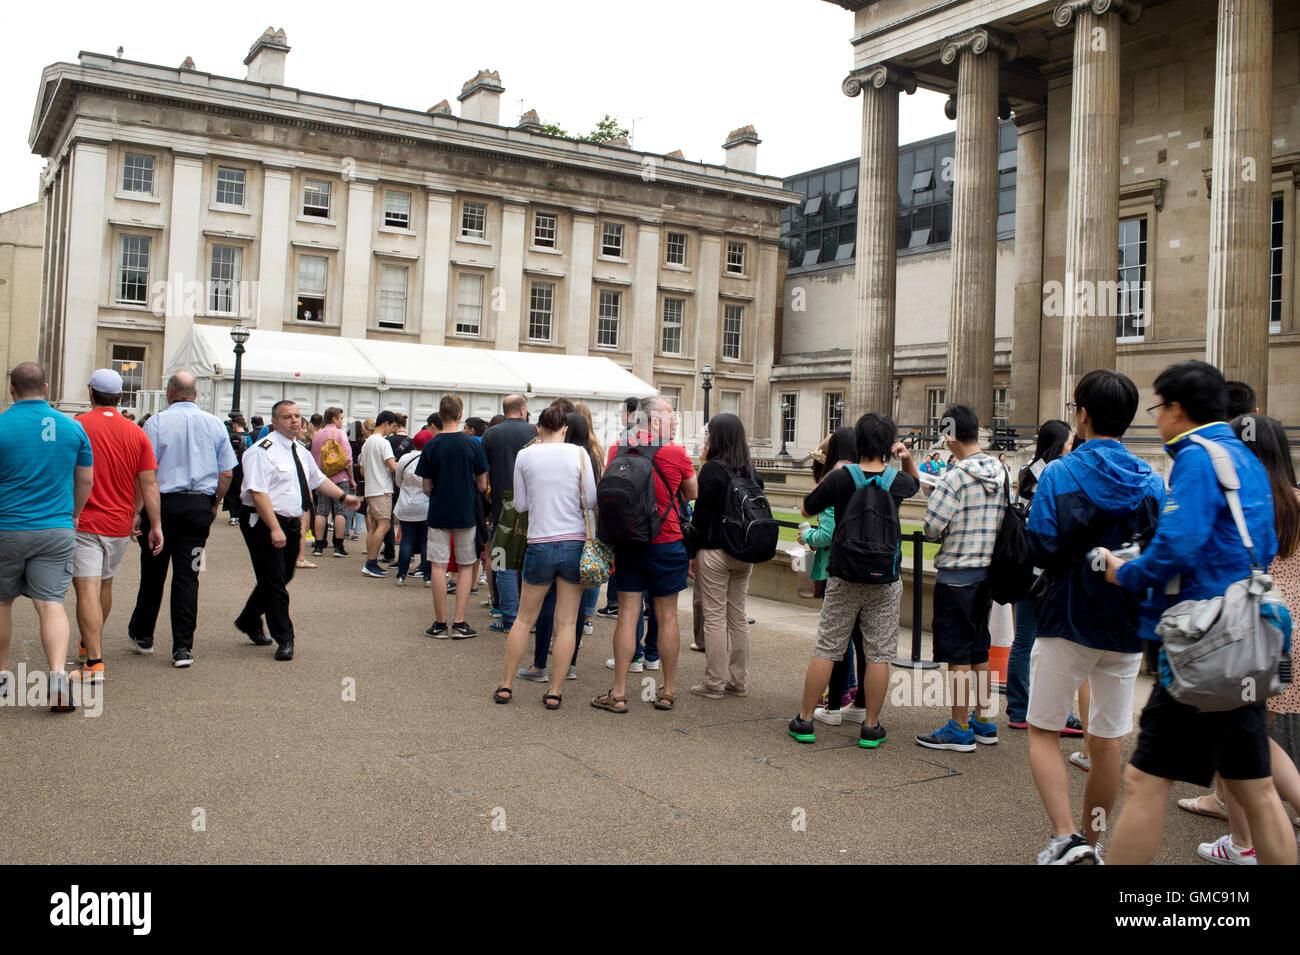 British Museum - visitors queue for security bag search. - Stock Image